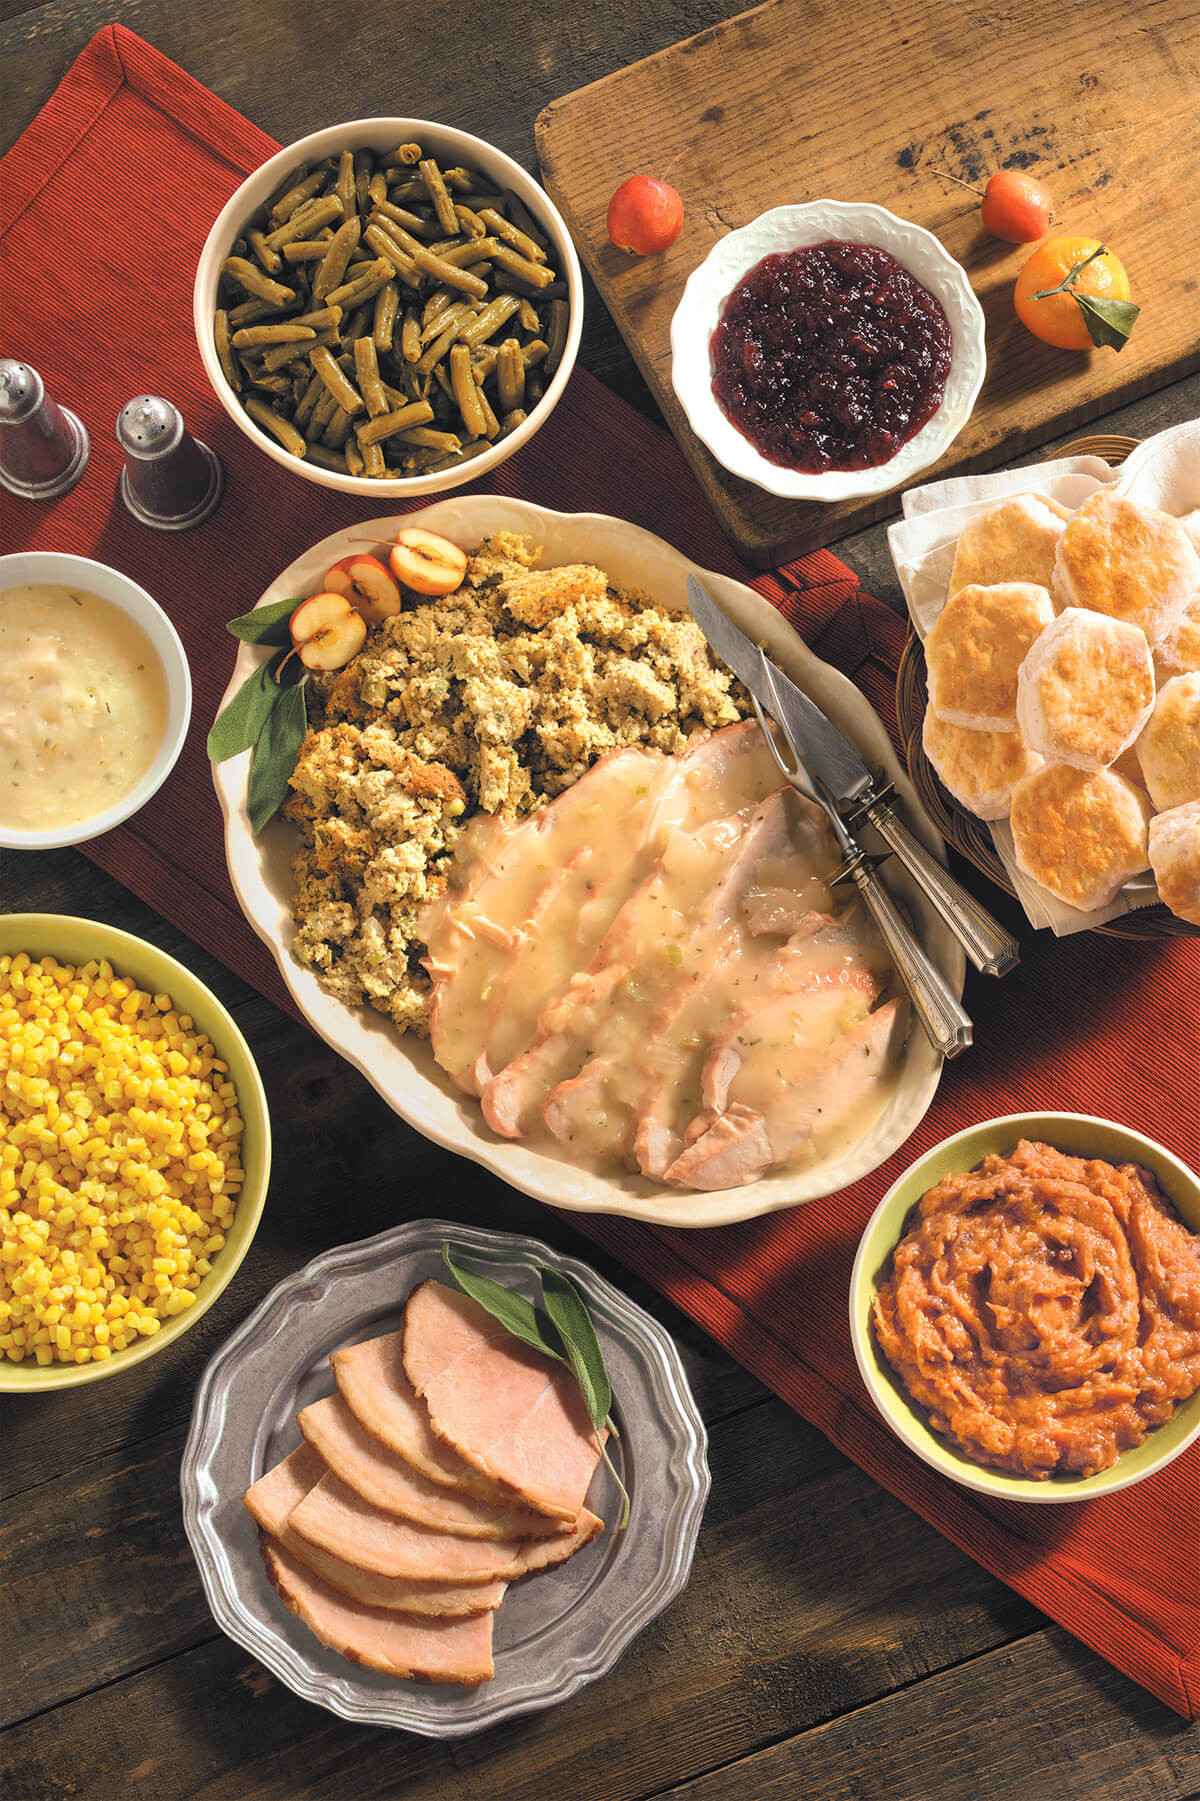 Thanksgiving Dinner For One  Cracker Barrel to Serve 1 4 Million Meals This